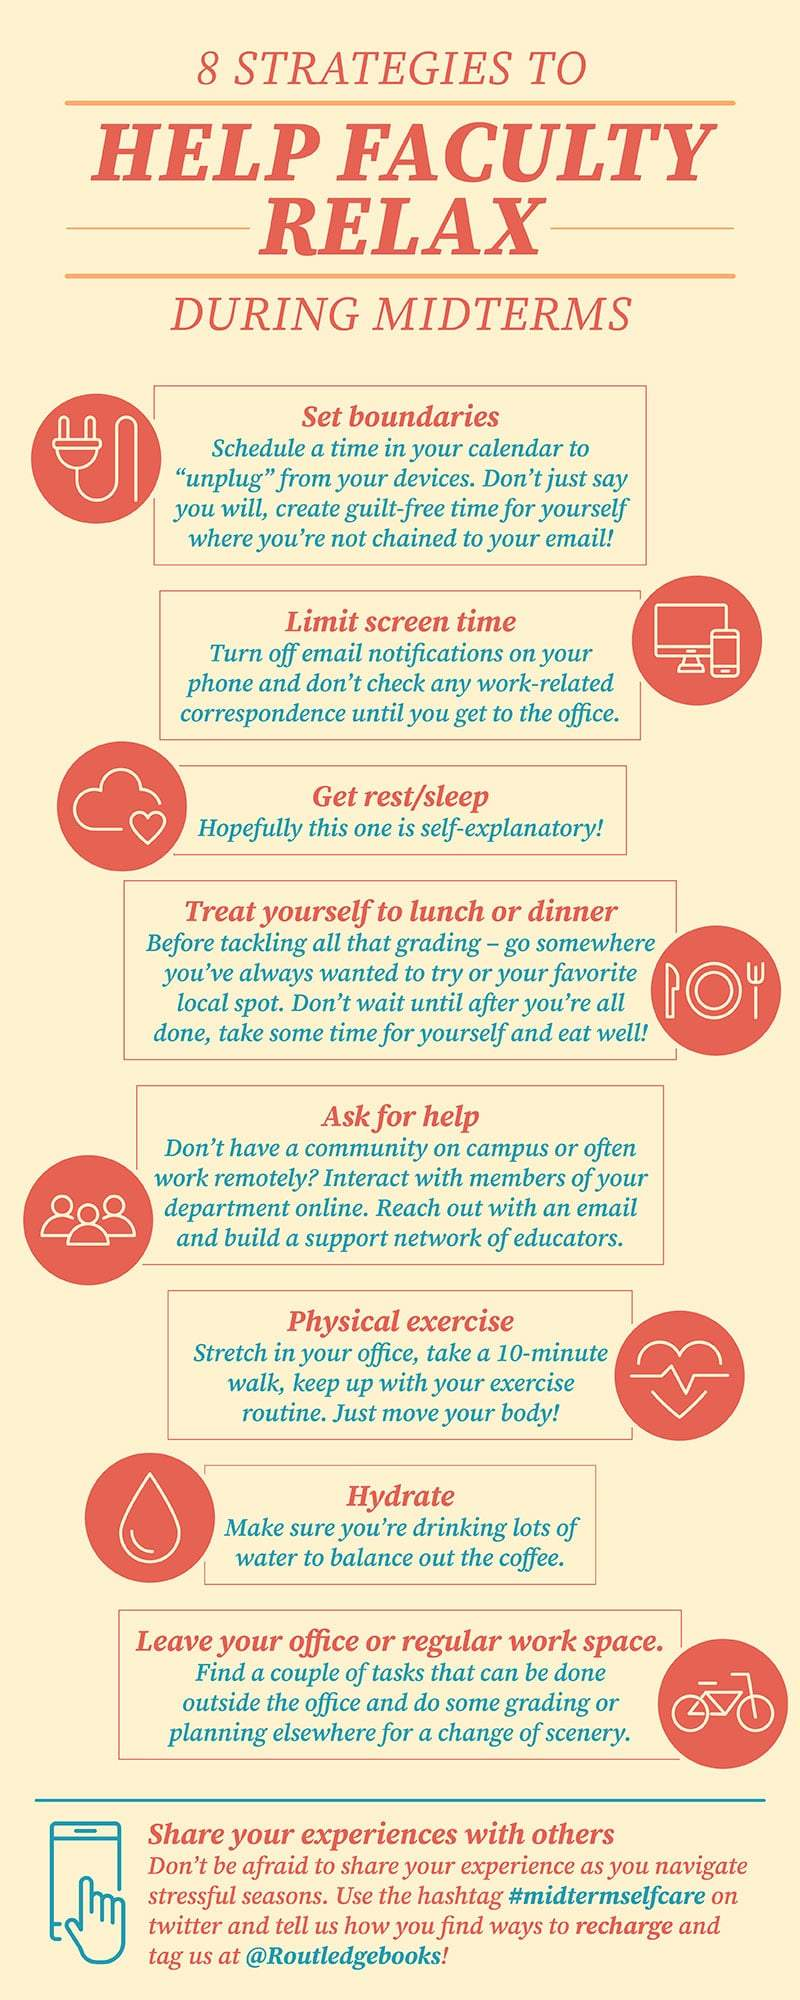 8 Strategies to Help Faculty Relax During Midterms Infographic